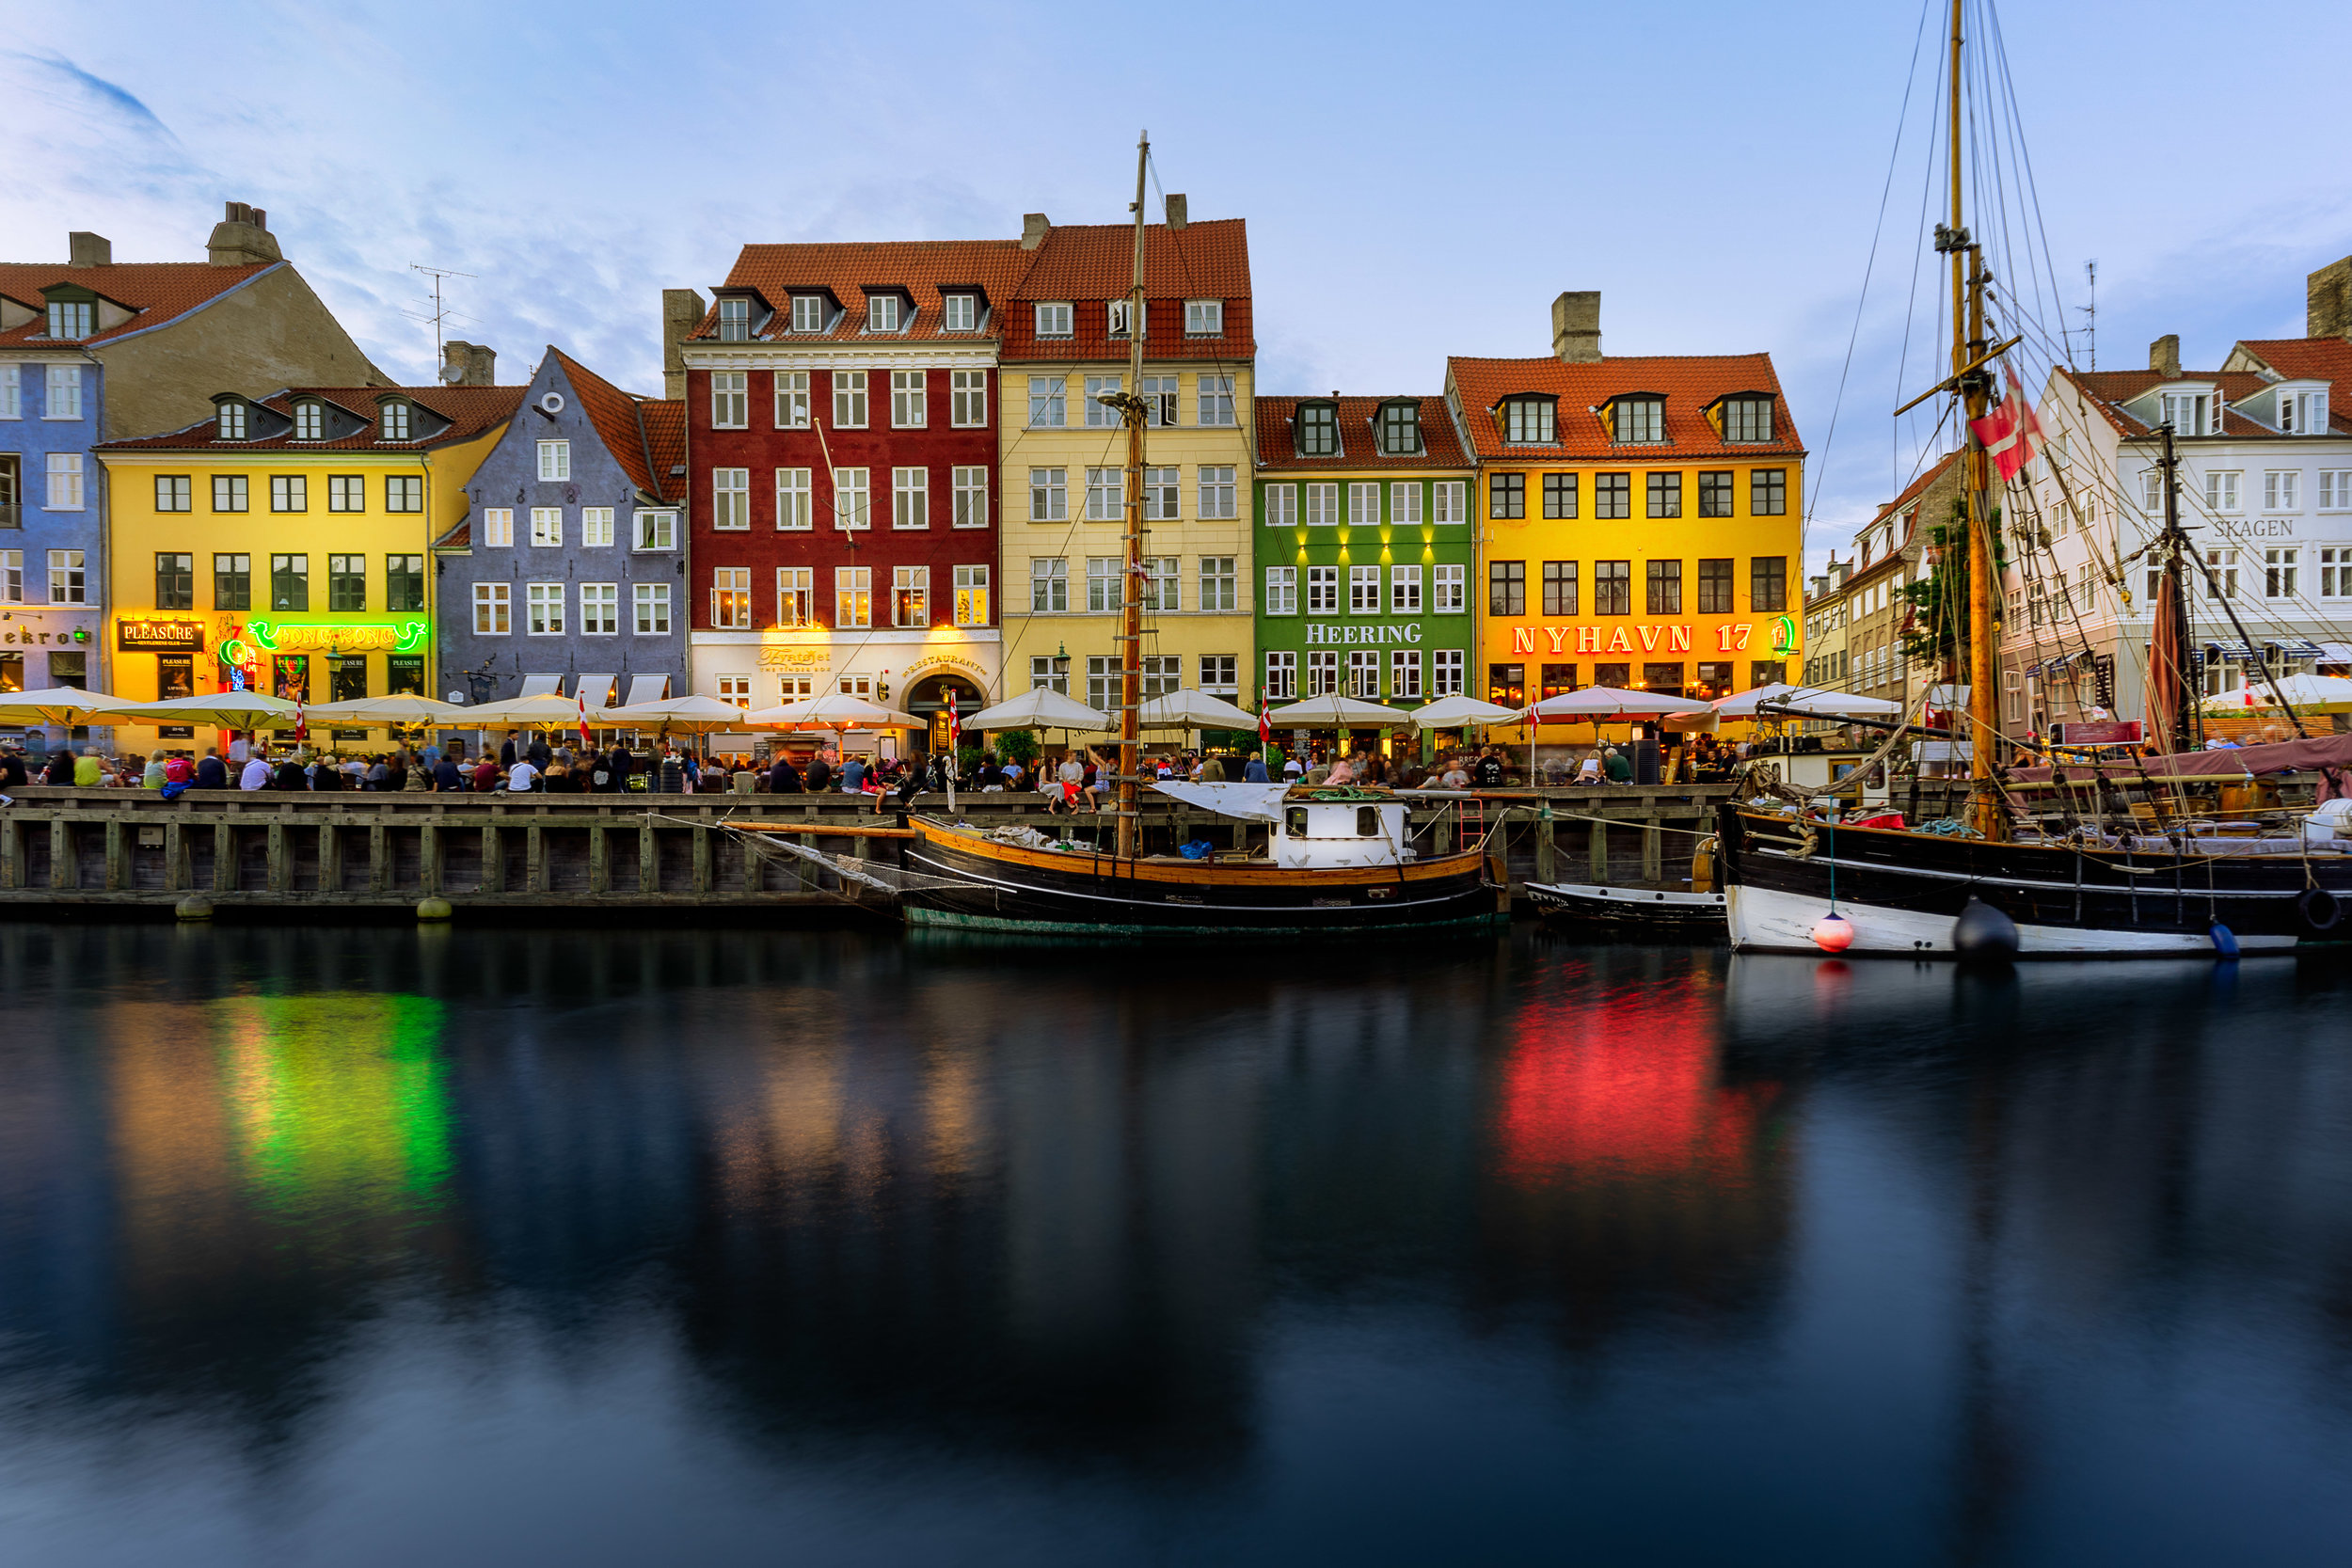 copenhagen. denmark. travel. adventure. europe. scandinavia. history. travelblog. classic view of the city. nyhavn. night view.jpg